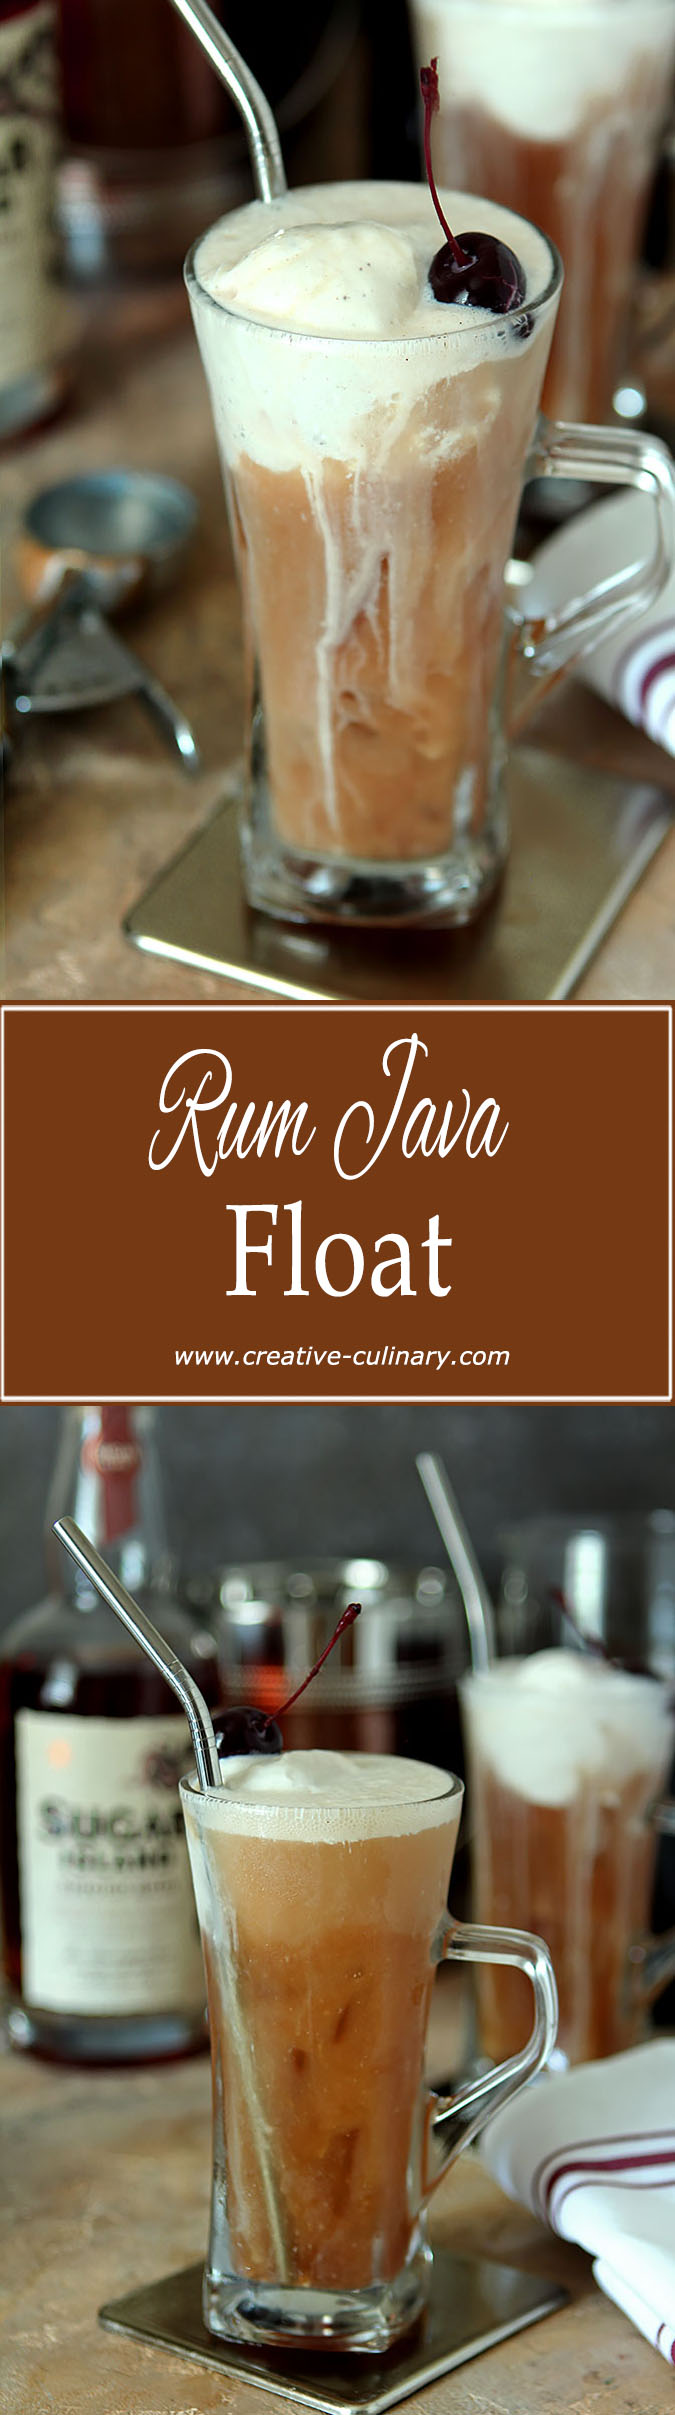 Make a very grownup treat with this Rum Java Float. Coffee, Rum and Orgeat Syrup makes for a delicious adult beverage!